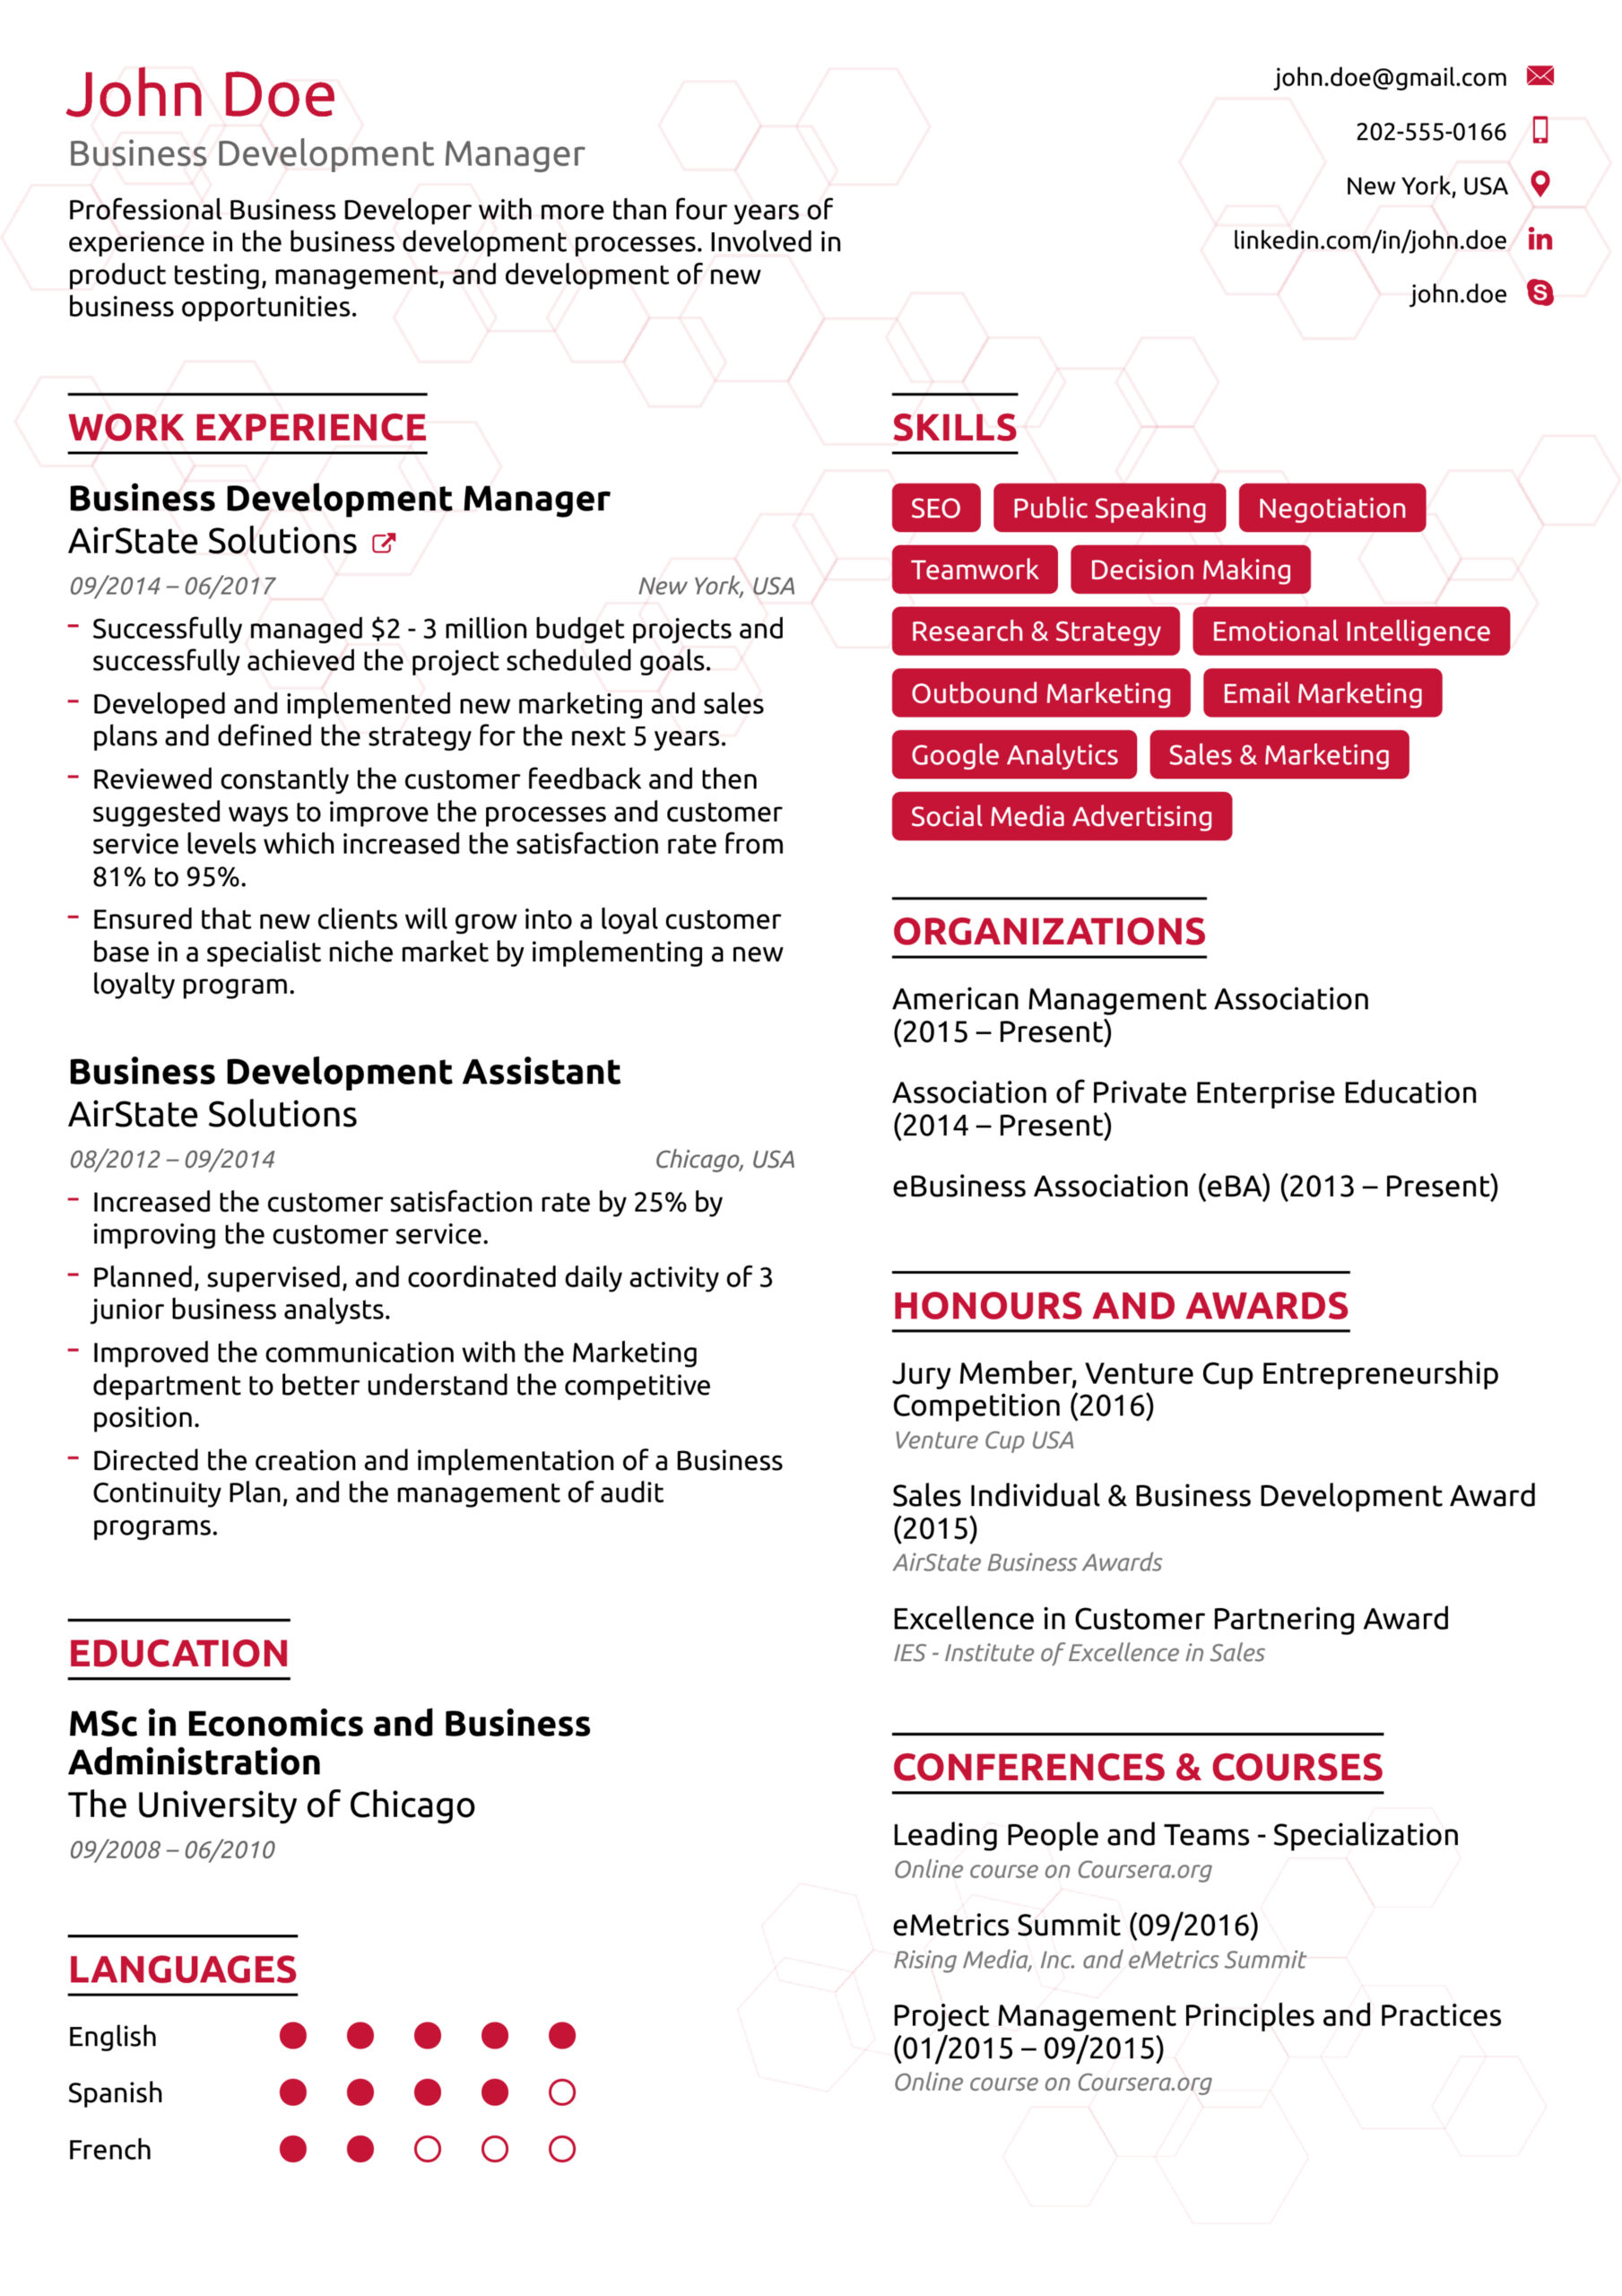 resume examples guides for any job good format best example data science review hostess Resume Good Resume Format 2016